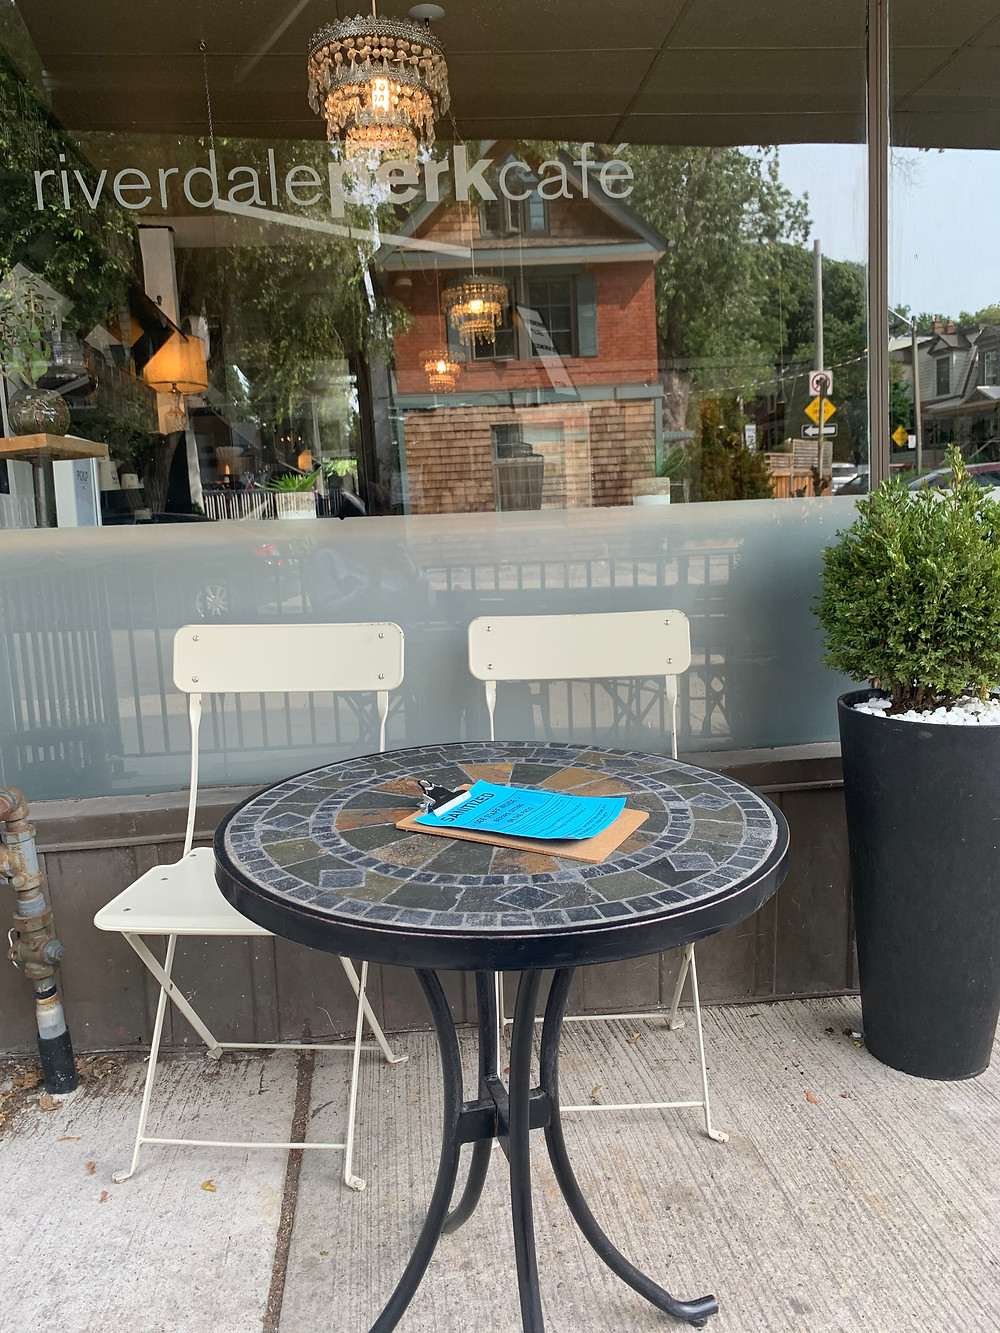 Toronto Riverdale Perk Cafe coffee patio open during COVID